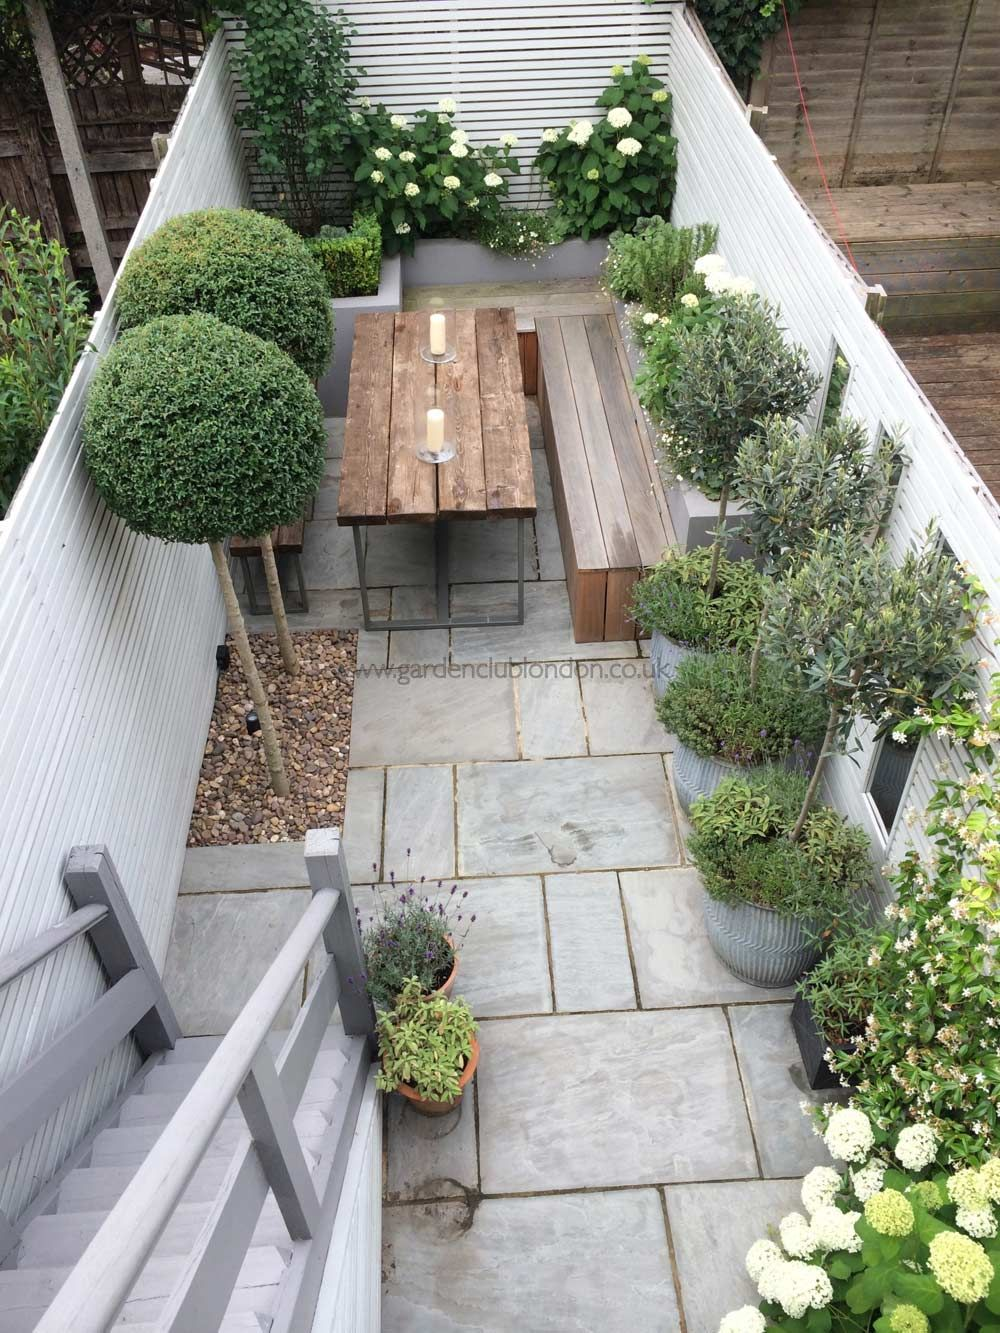 Slim Rear Contemporary Garden Design London Small Terrace, Small Garden  Trees, Tiny Garden Ideas